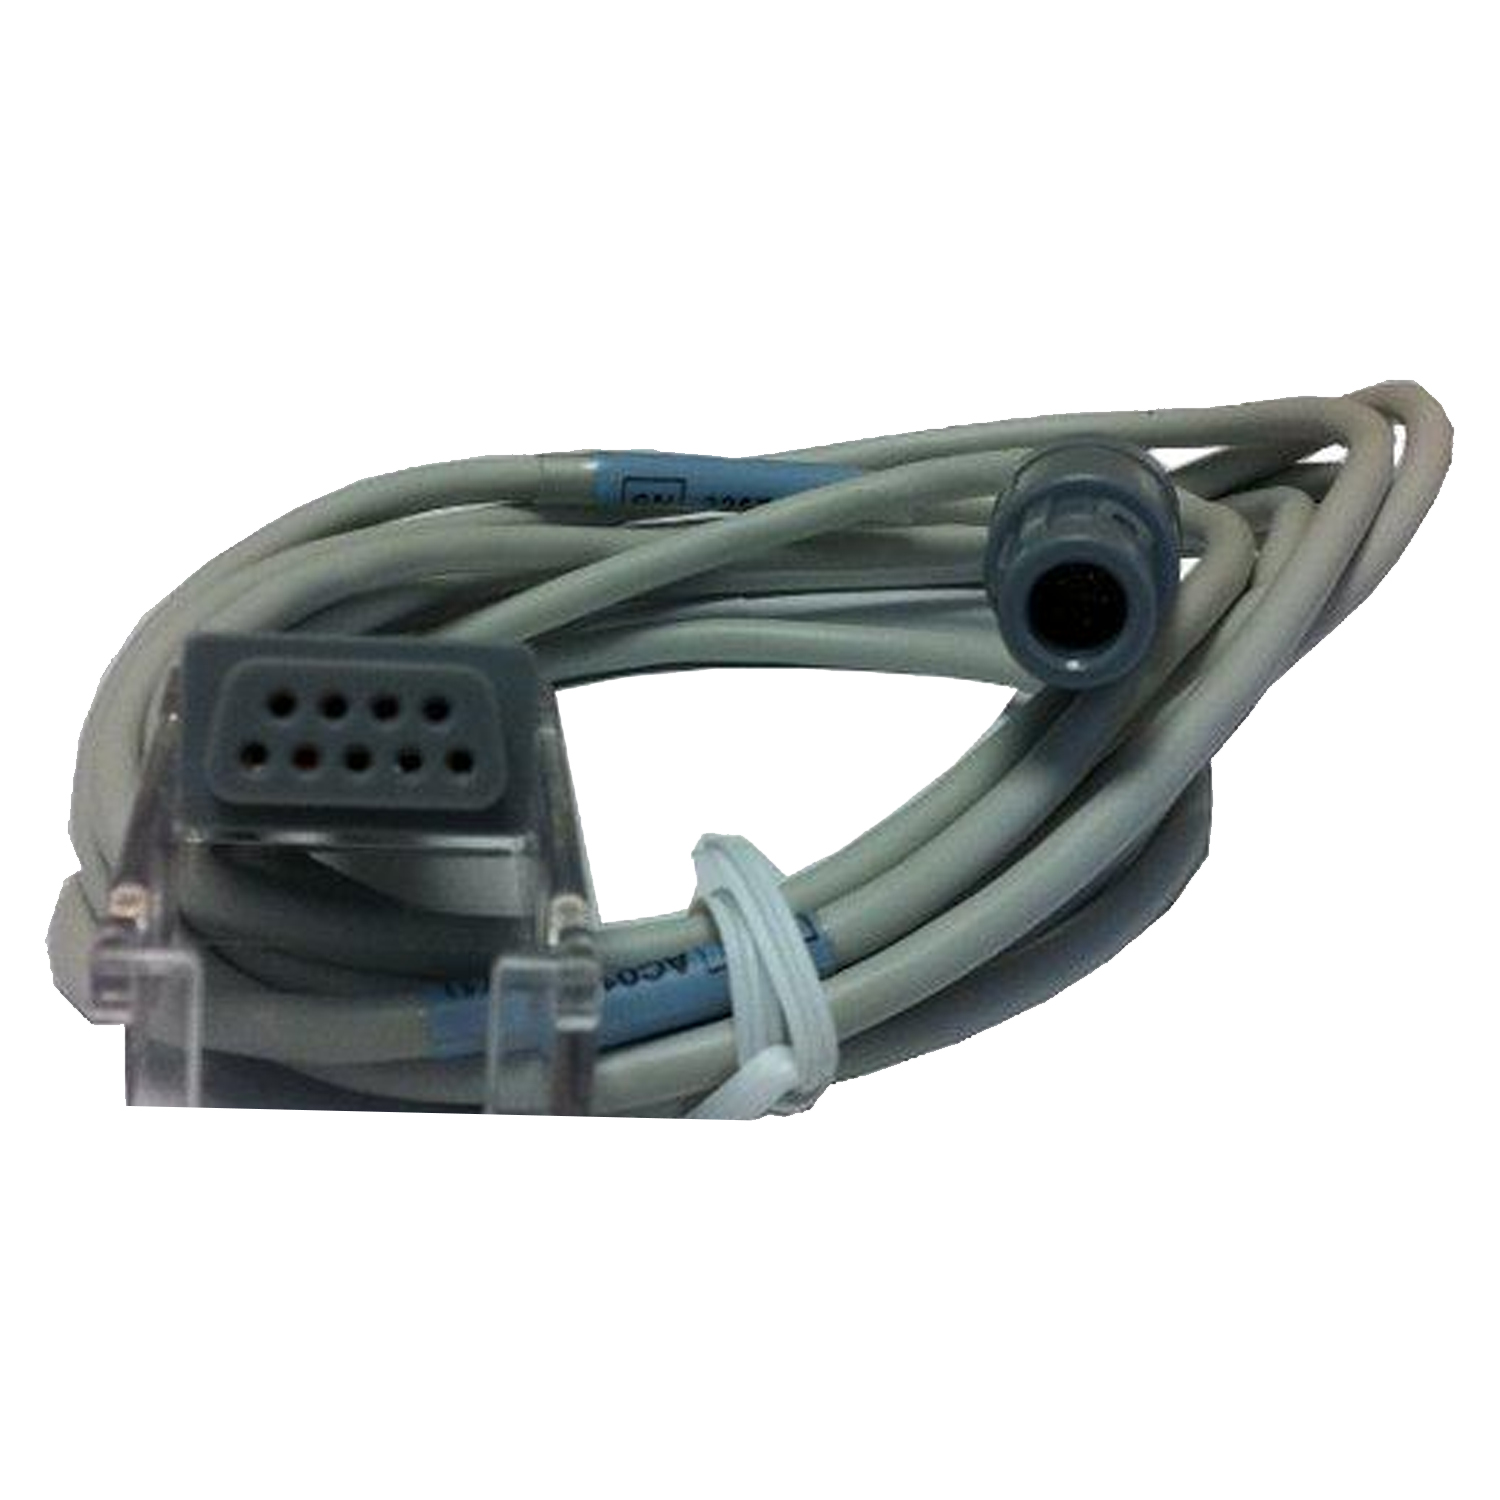 5 Pin Digital SPO2 Cable for Waveline EZ, Touch and Pro